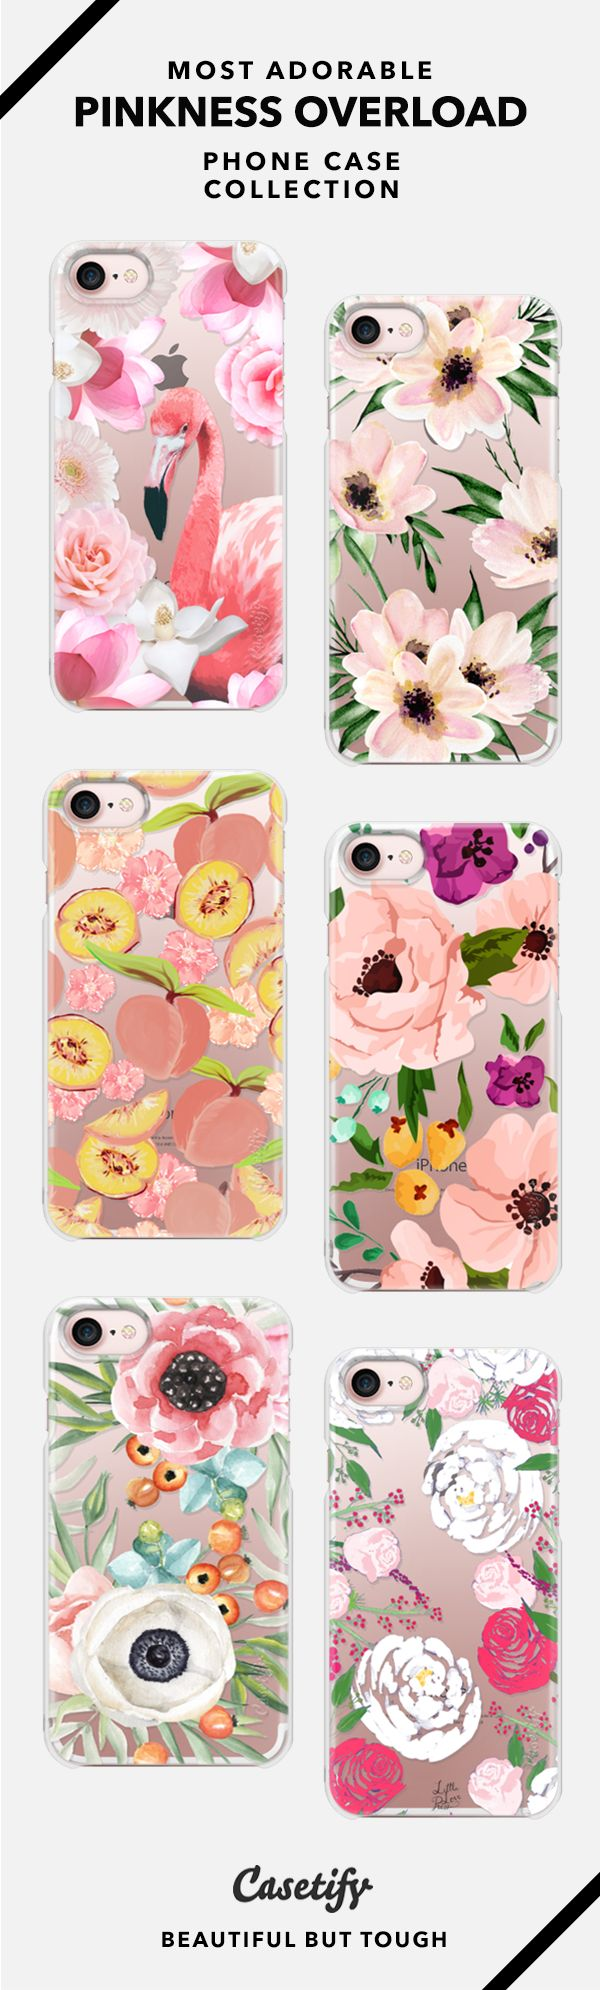 """'Pink Is The New Me."""" Pinkness Overload Phone Case Collection - iPhone 6/6s/7/7+ AND MORE! Shop them here ☝️☝️☝️ BEAUTIFUL BUT TOUGH ✨ - Pink, Flower, Love, Sweet, Floral, Obsessed, Girl, Cute, Art, Flamingo, Summer"""